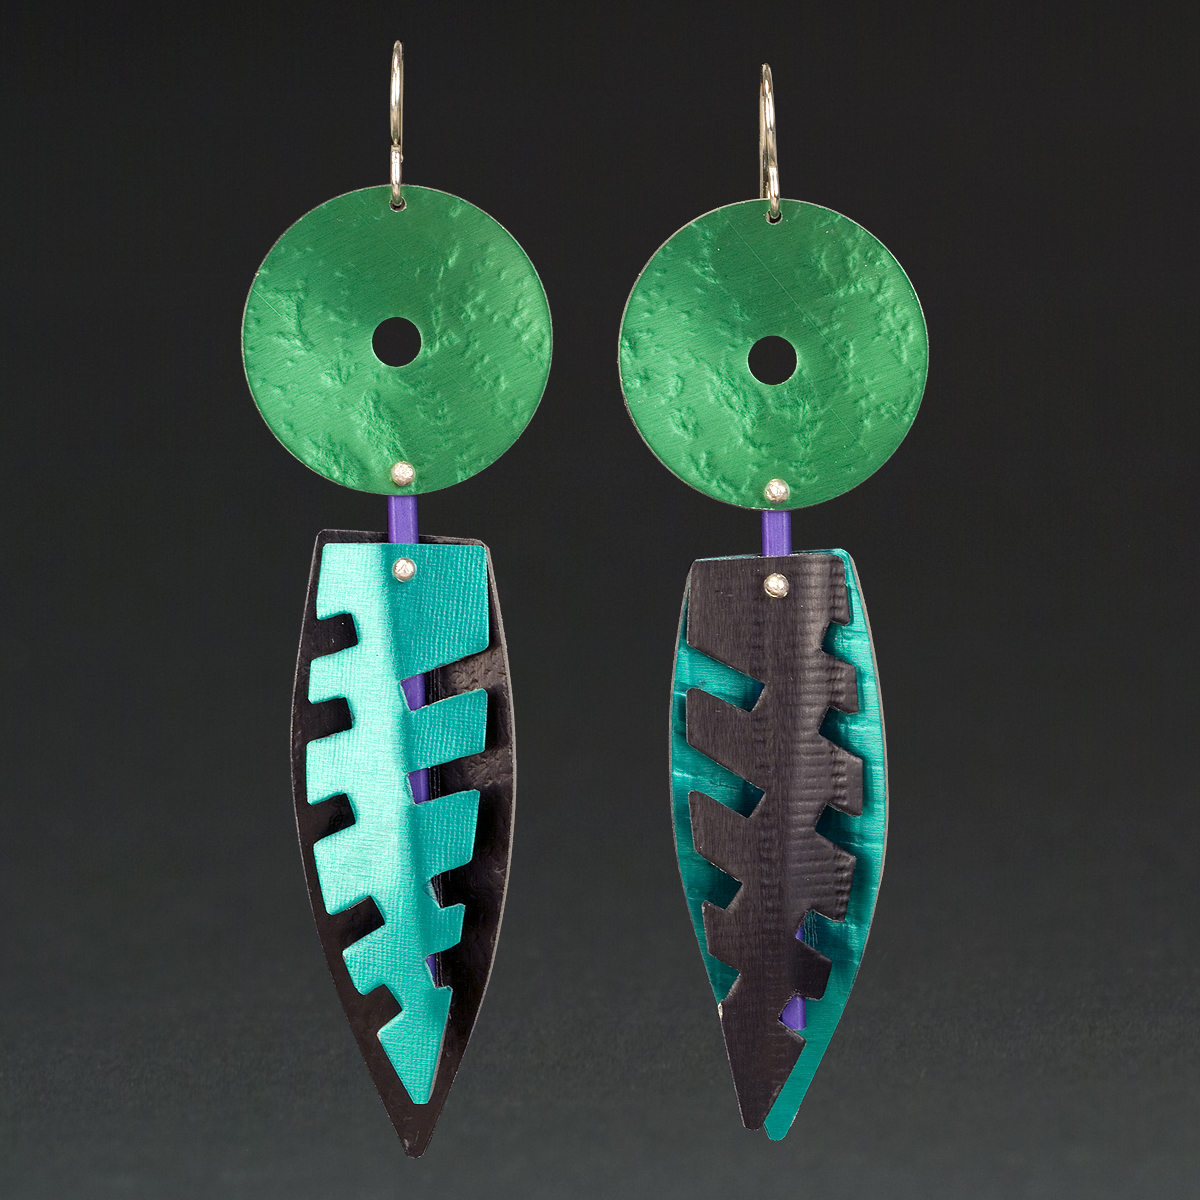 A - Green, Black, Turquoise